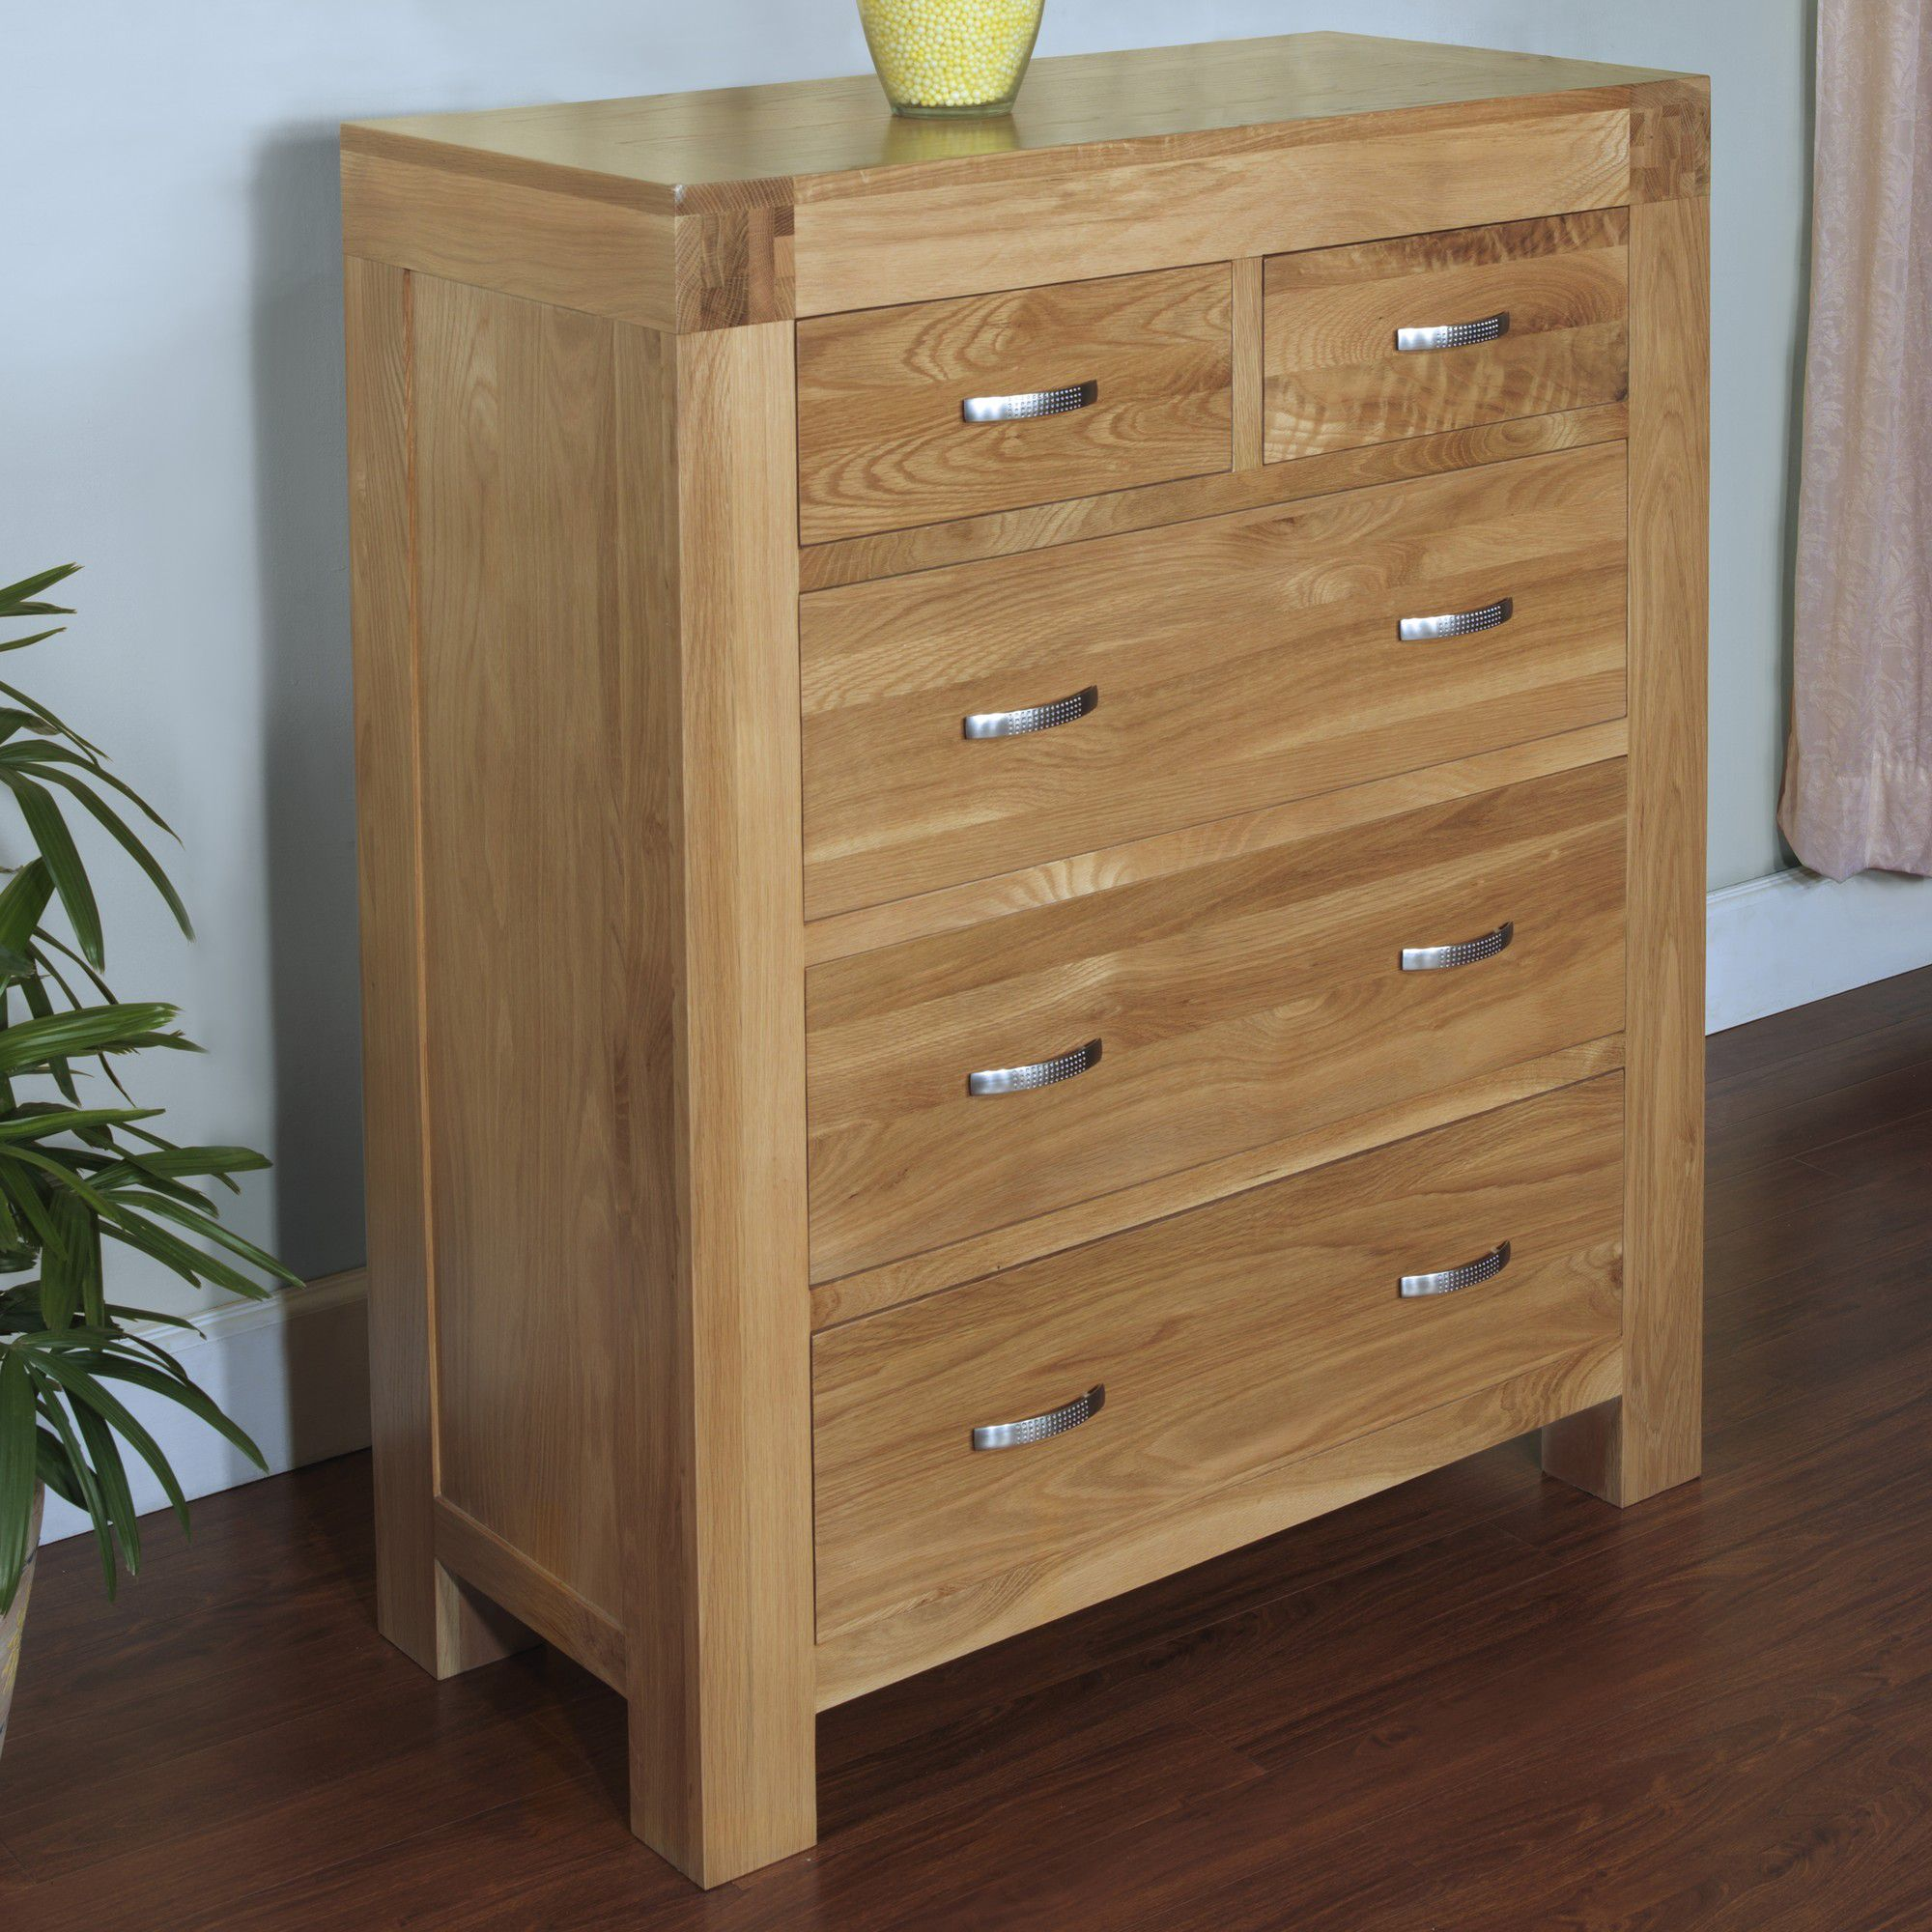 Hawkshead Rustic Oak Blonde 2 Over 3 Chest of Drawers at Tesco Direct